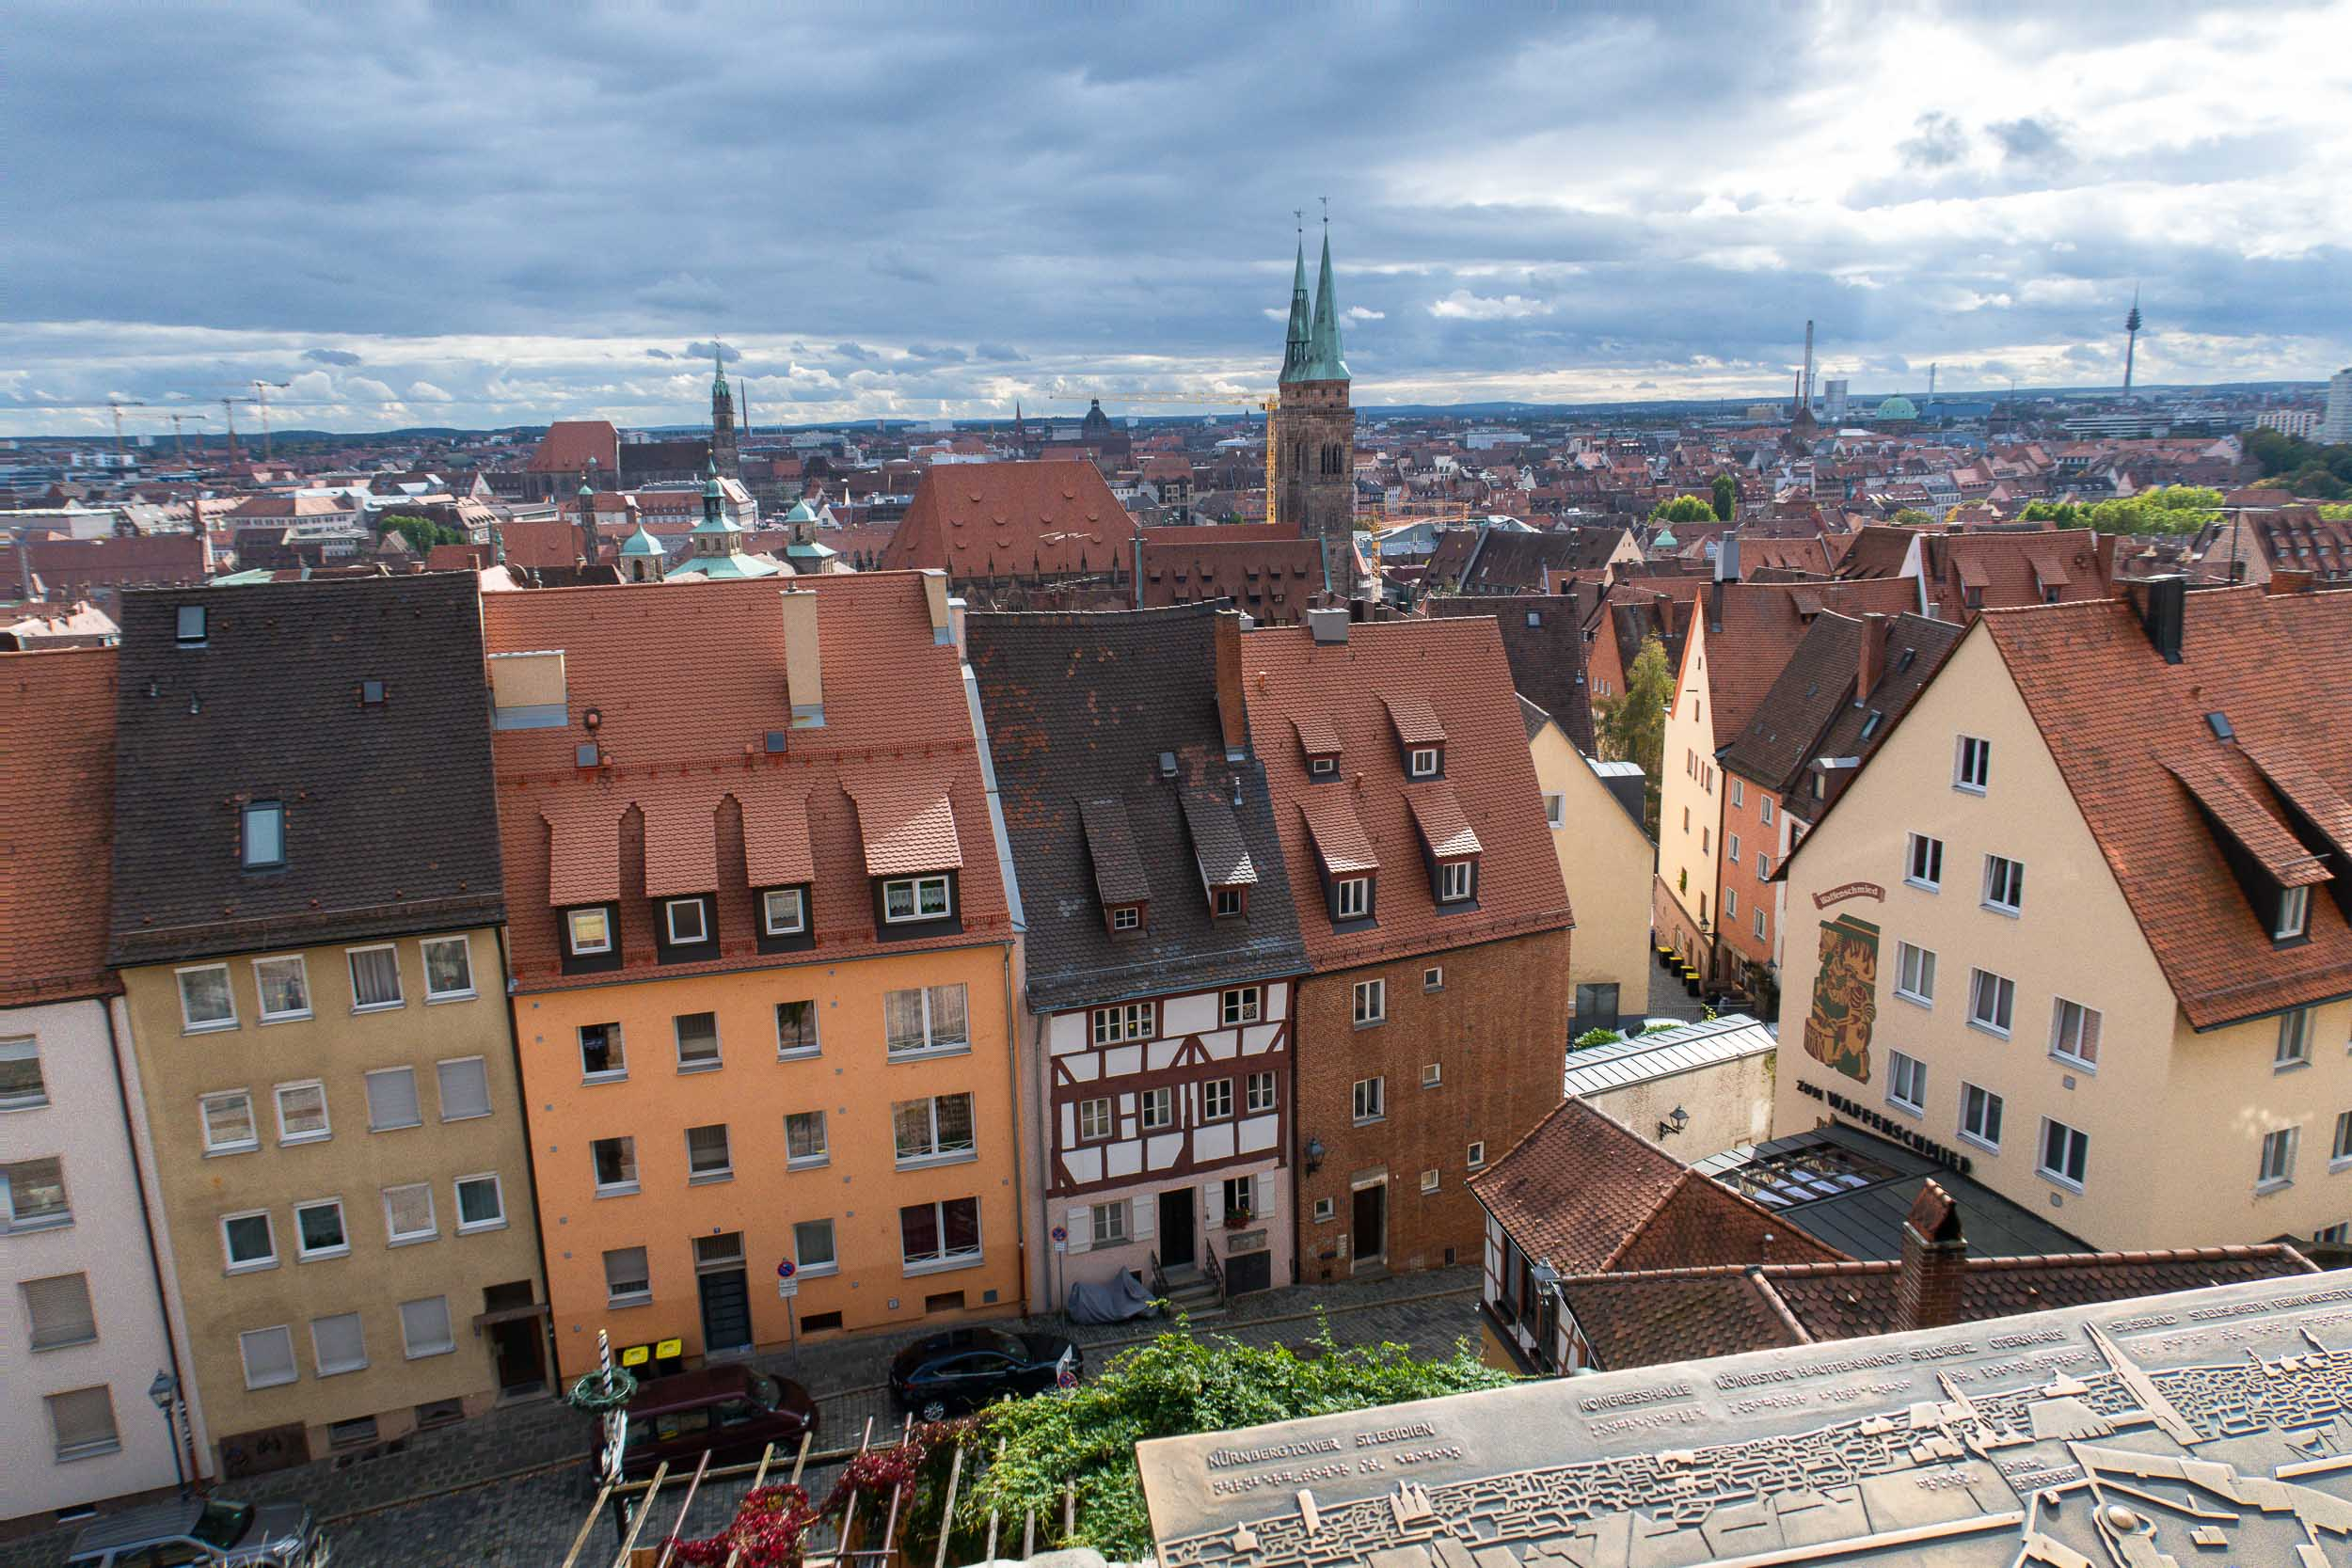 EVERYTHING you need to know about Nuremberg, Germany. Where to visit, eat, and what to do.